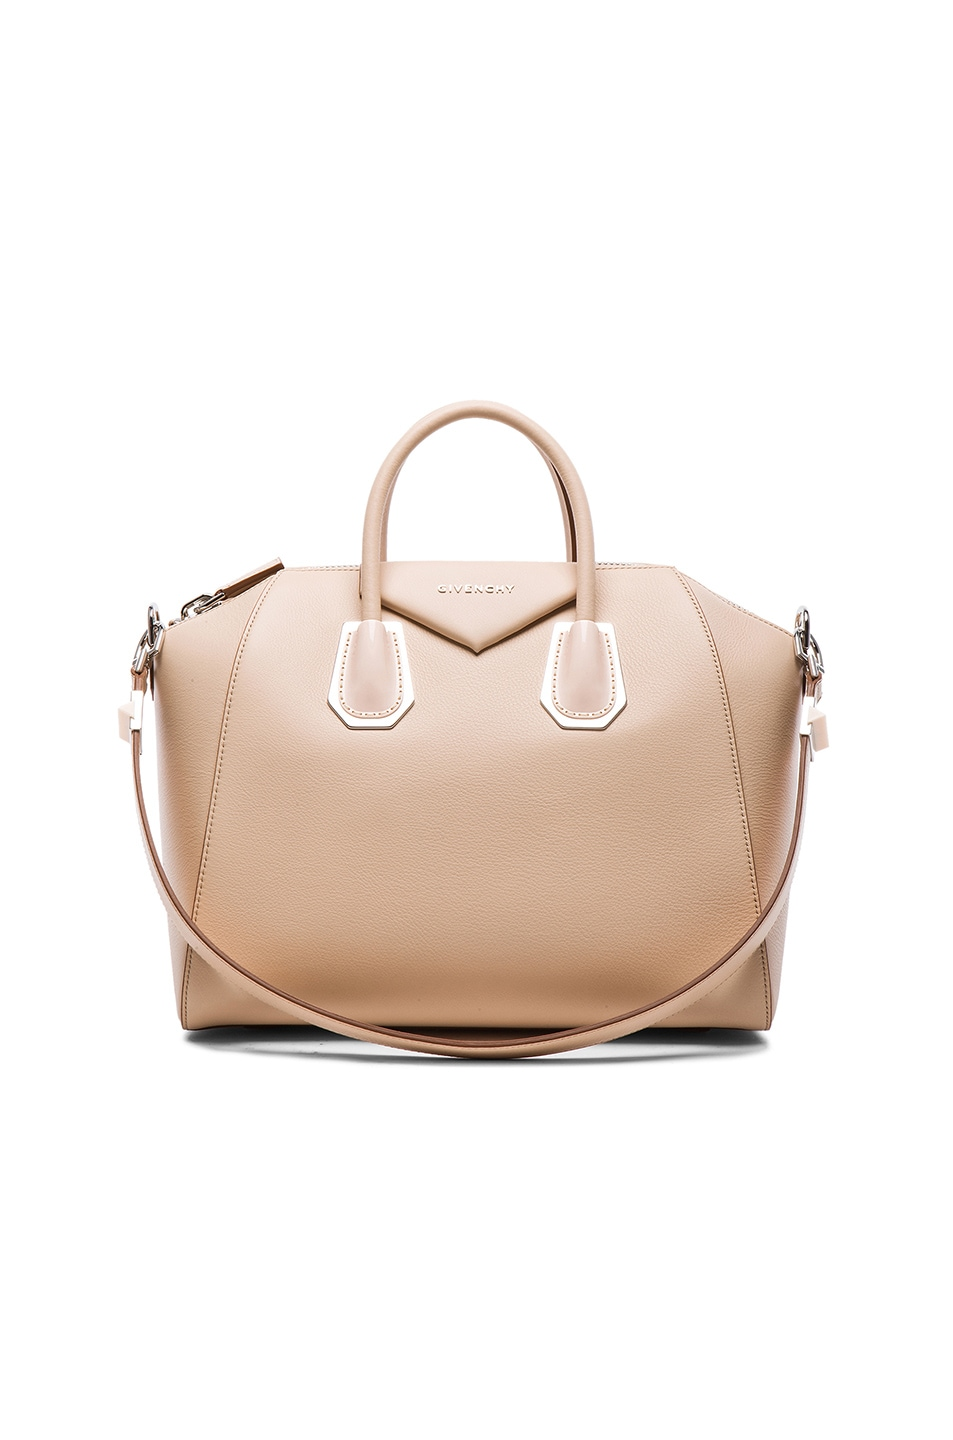 Image 1 of GIVENCHY Medium Waxy Leather & Plexi Antigona in Light Beige